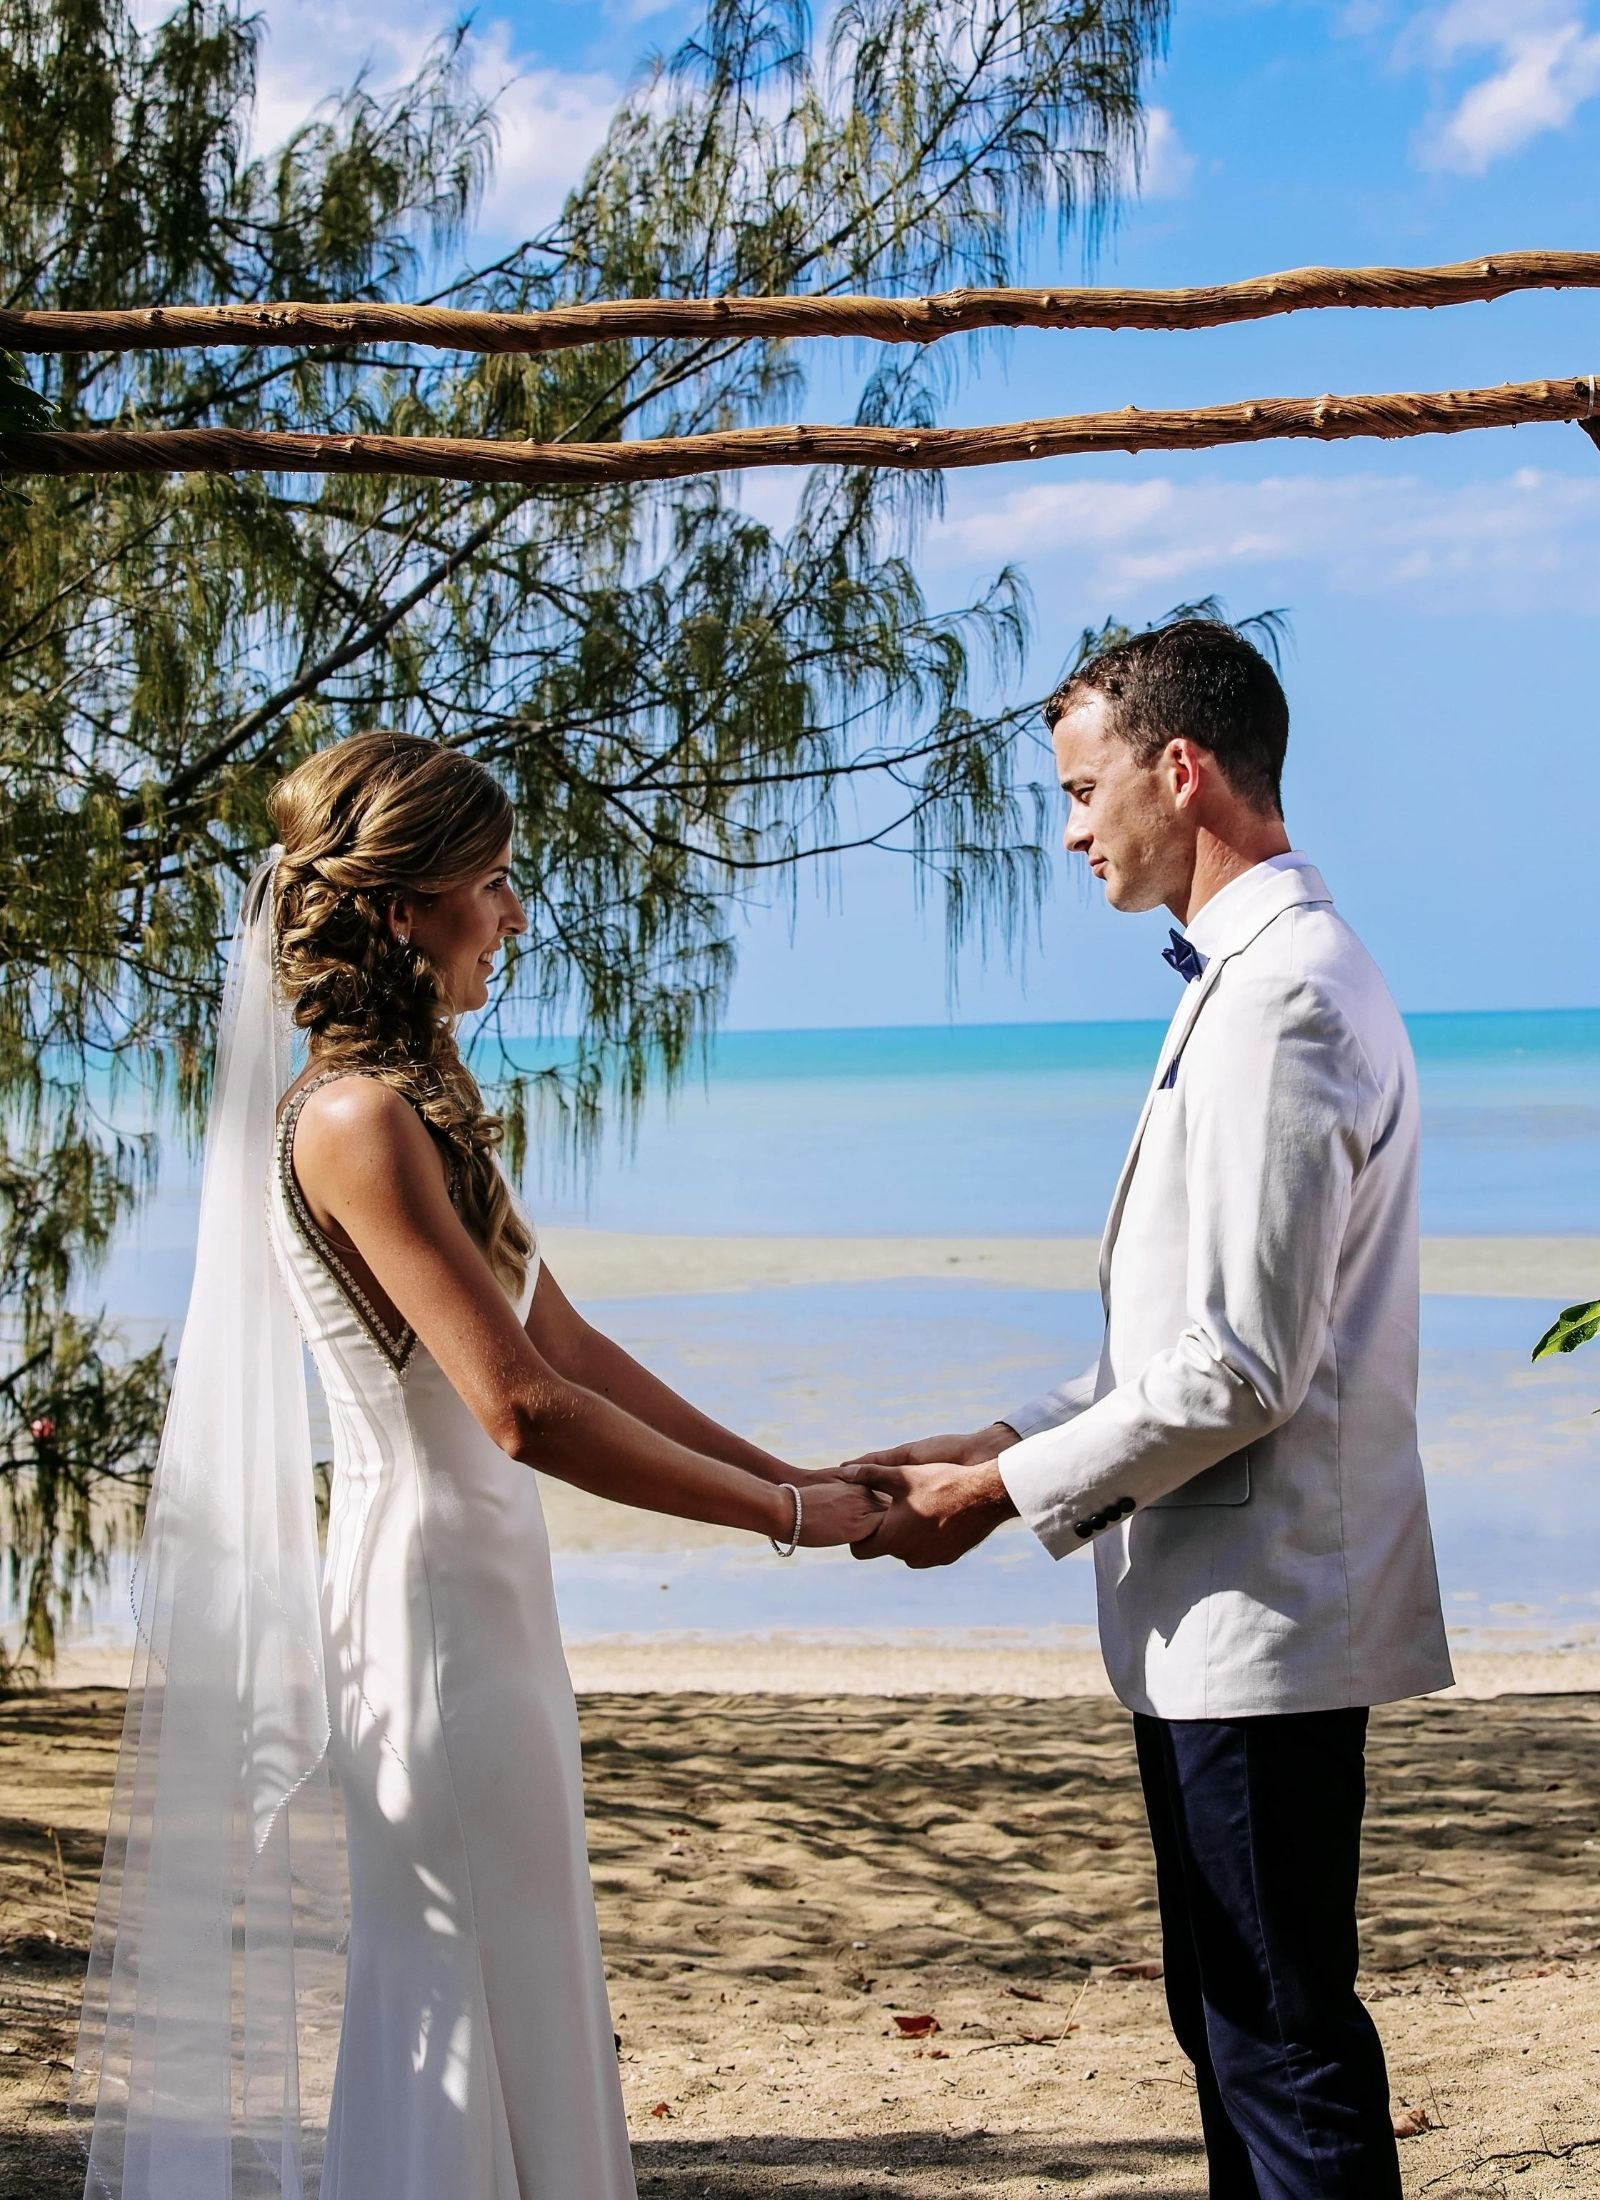 Bride and groom during wedding ceremony at Paradise Cove Resort